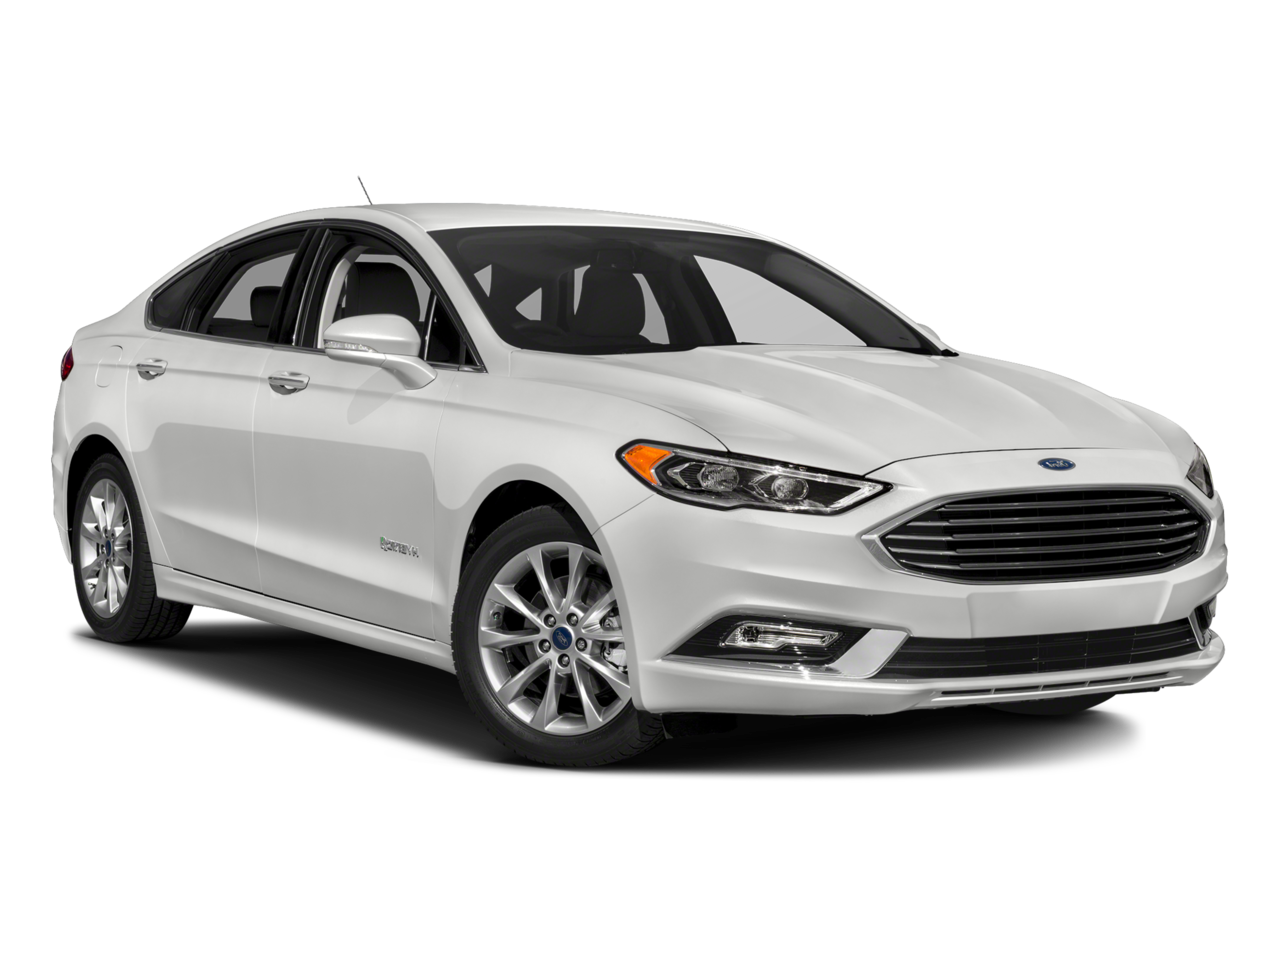 New 2018 Ford Fusion Hybrid S 4D Sedan in San Jose #CFD11508T | Capitol Ford